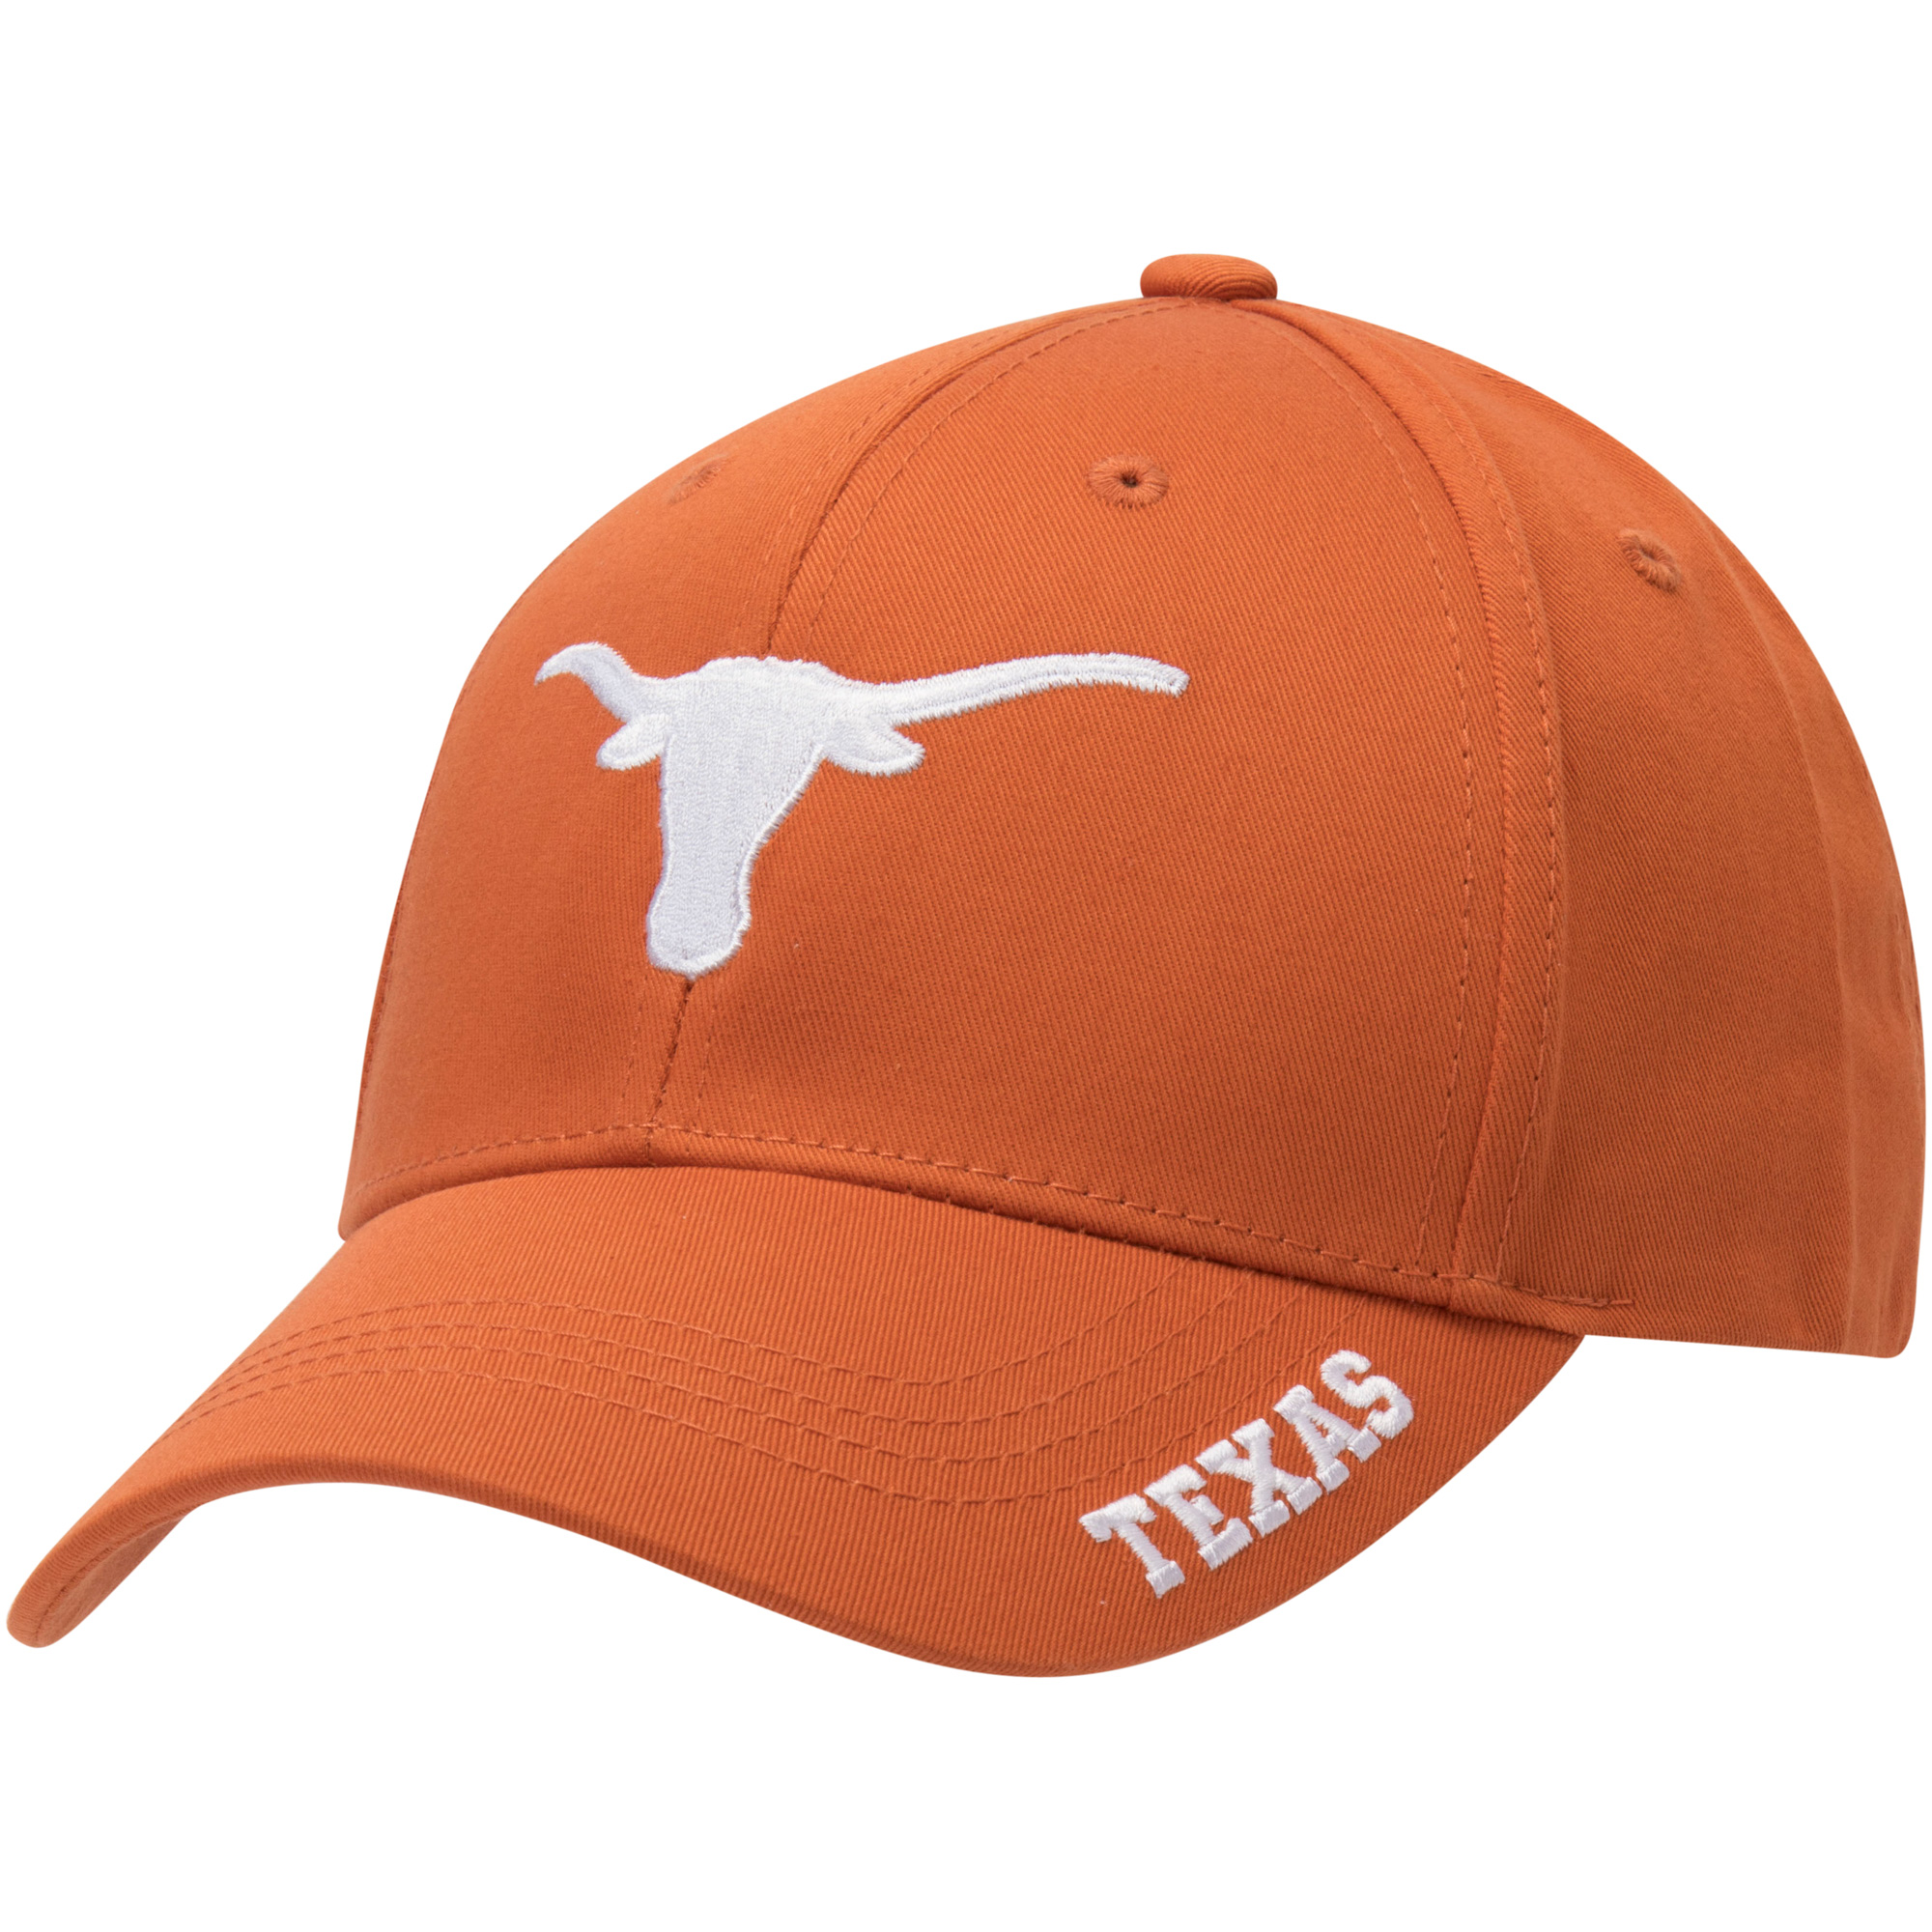 Men's Texas Orange Texas Longhorns Silhouette Adjustable Hat - OSFA